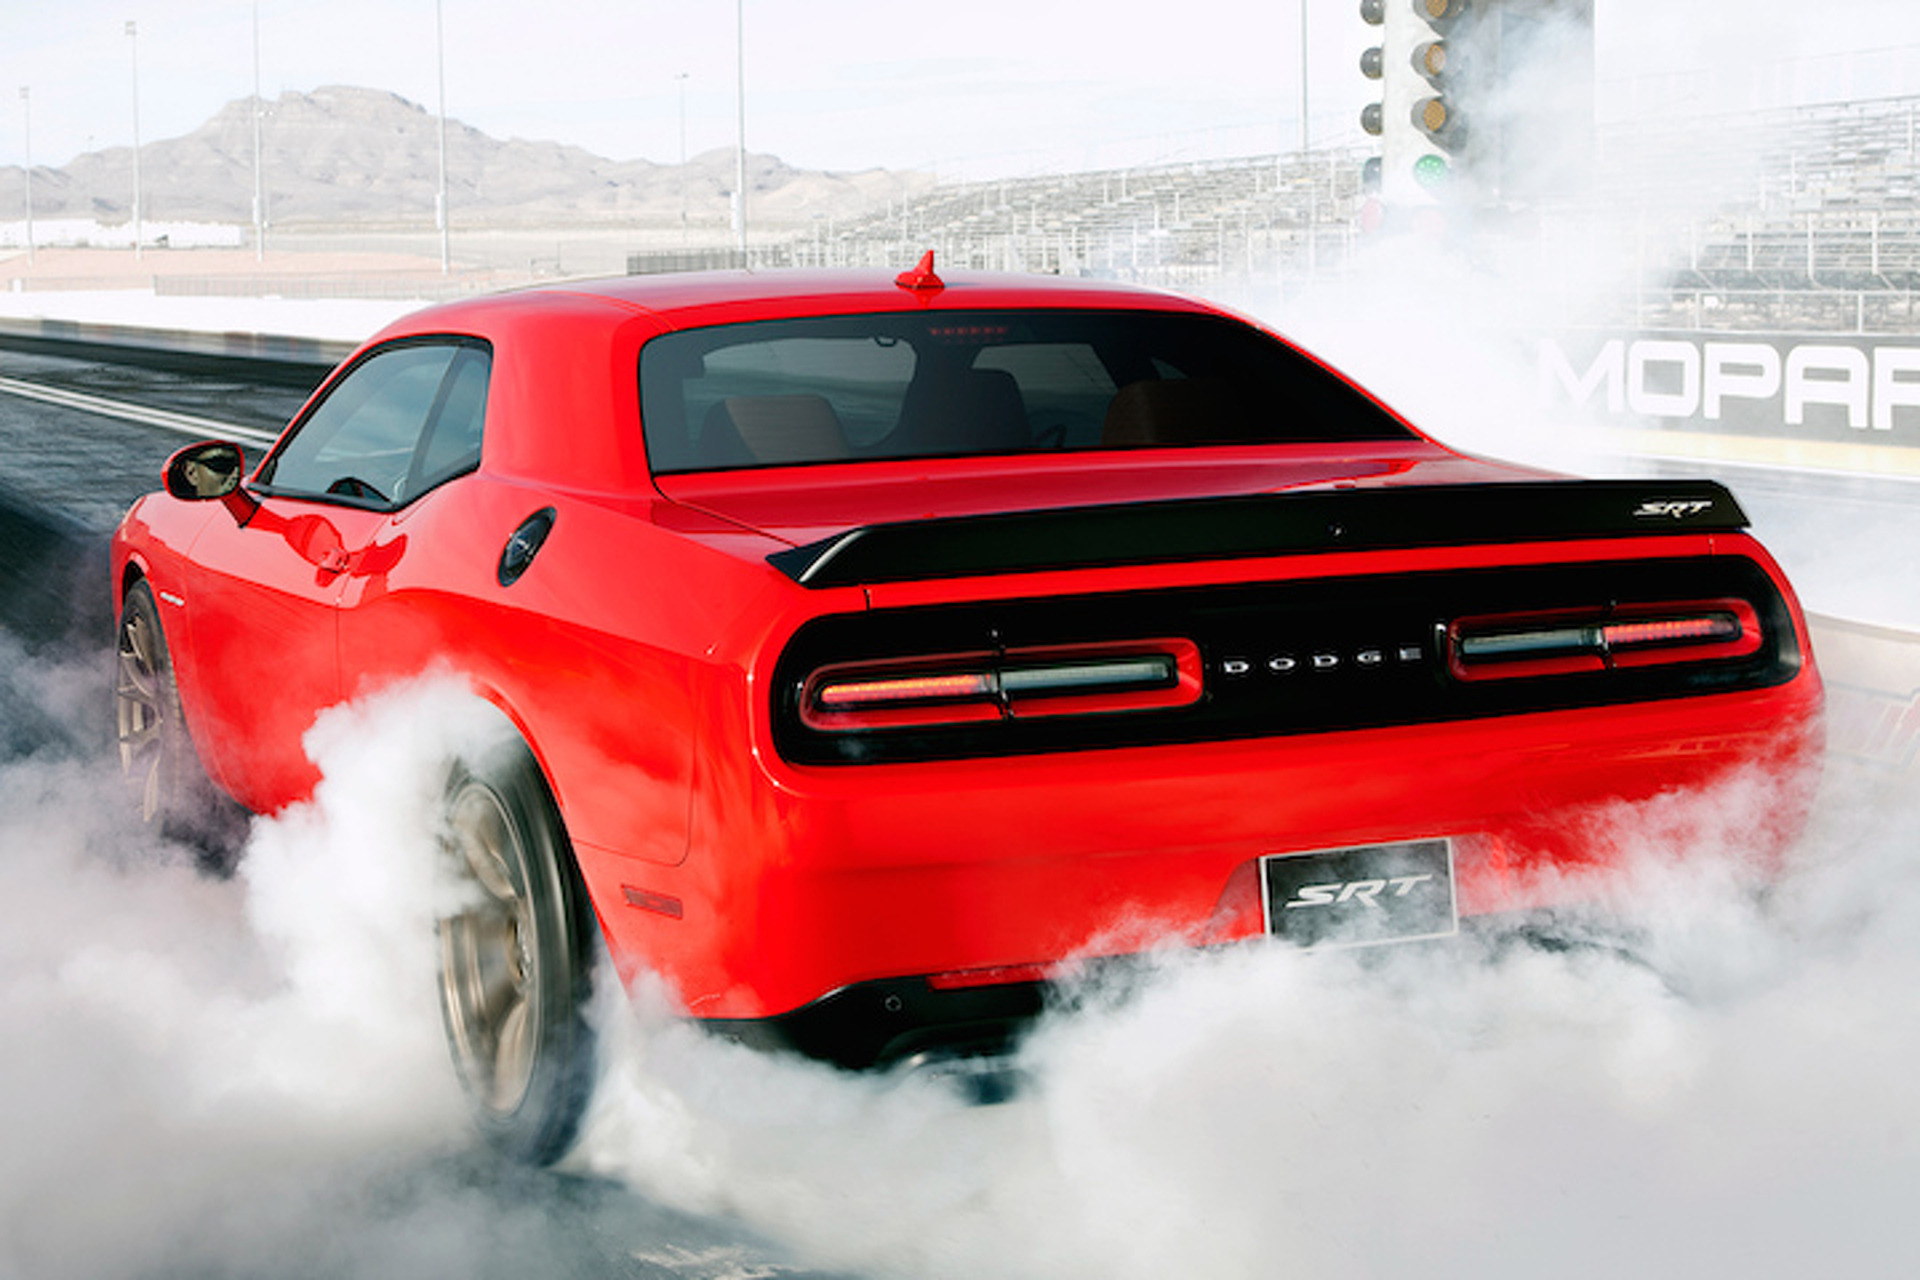 707-HP Dodge Challenger Hellcat is the Most Powerful Muscle Car Ever [w/Video]